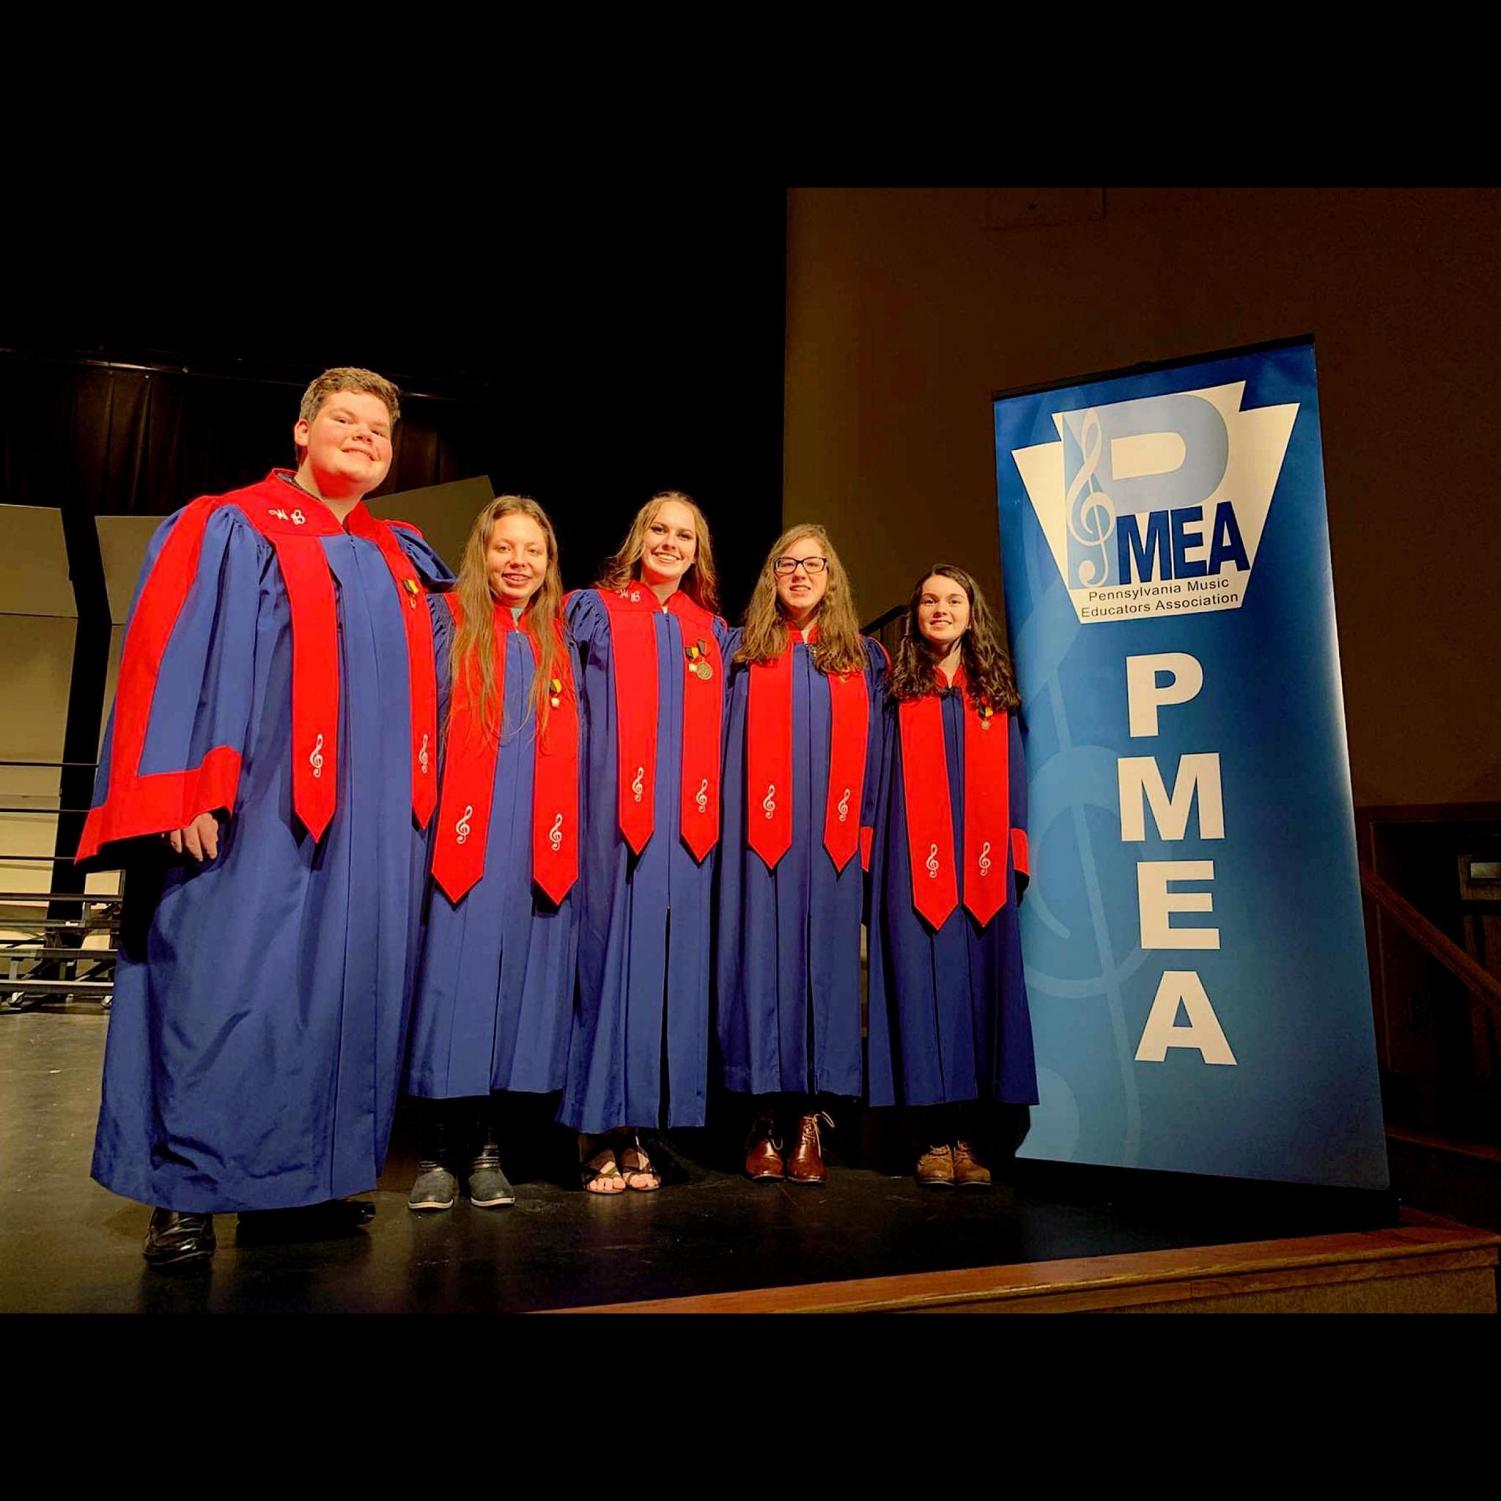 WB District Choir Representatives From Left to Right Noah Fry, Khandyce English, Taylor Maguire,Maya Rahb. and Carrie Fuller.